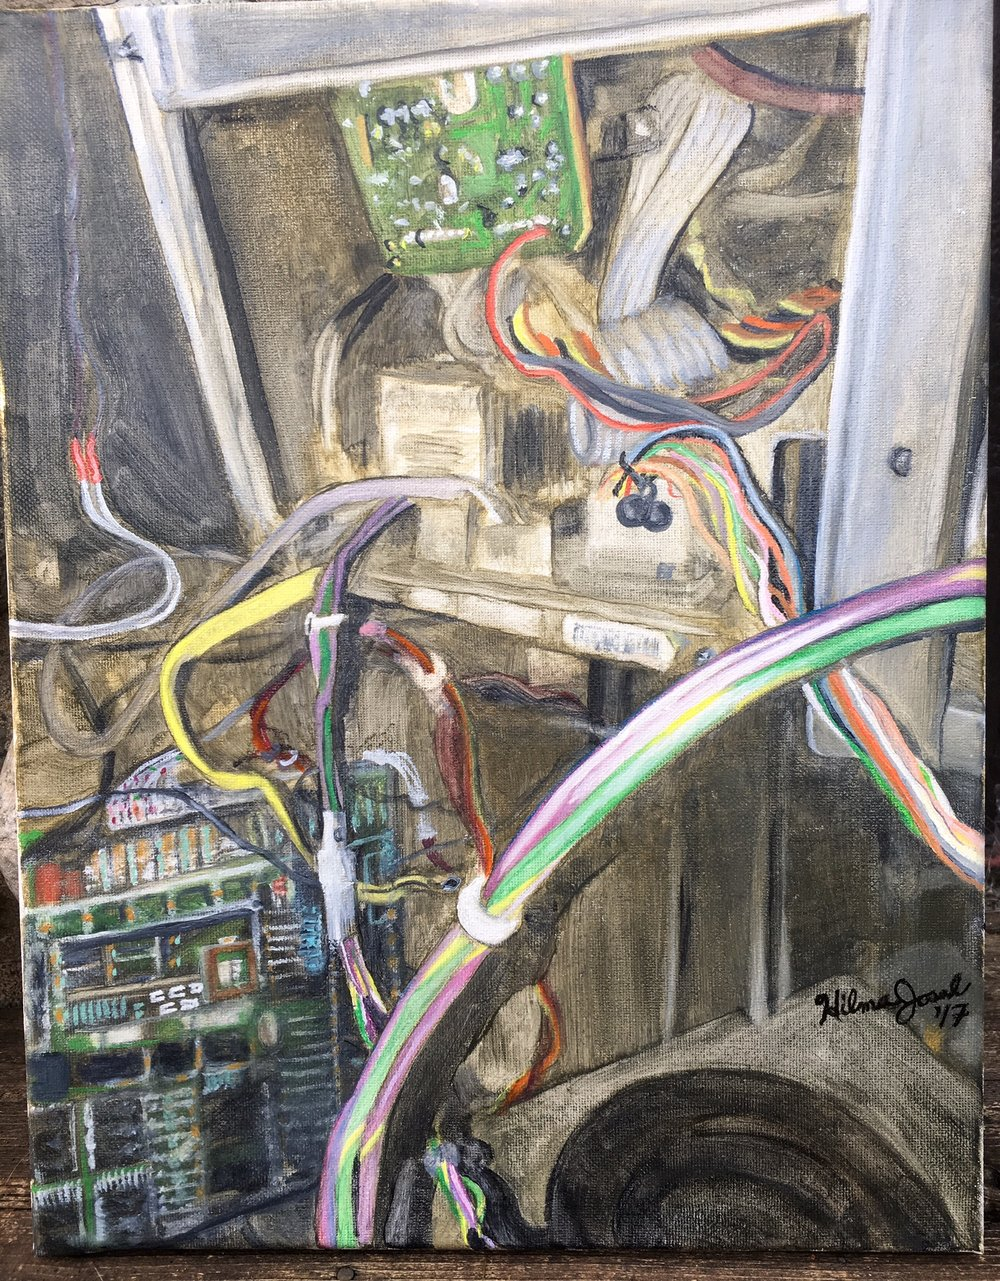 Inside MK2 Arcade Machine PCB's and Wires